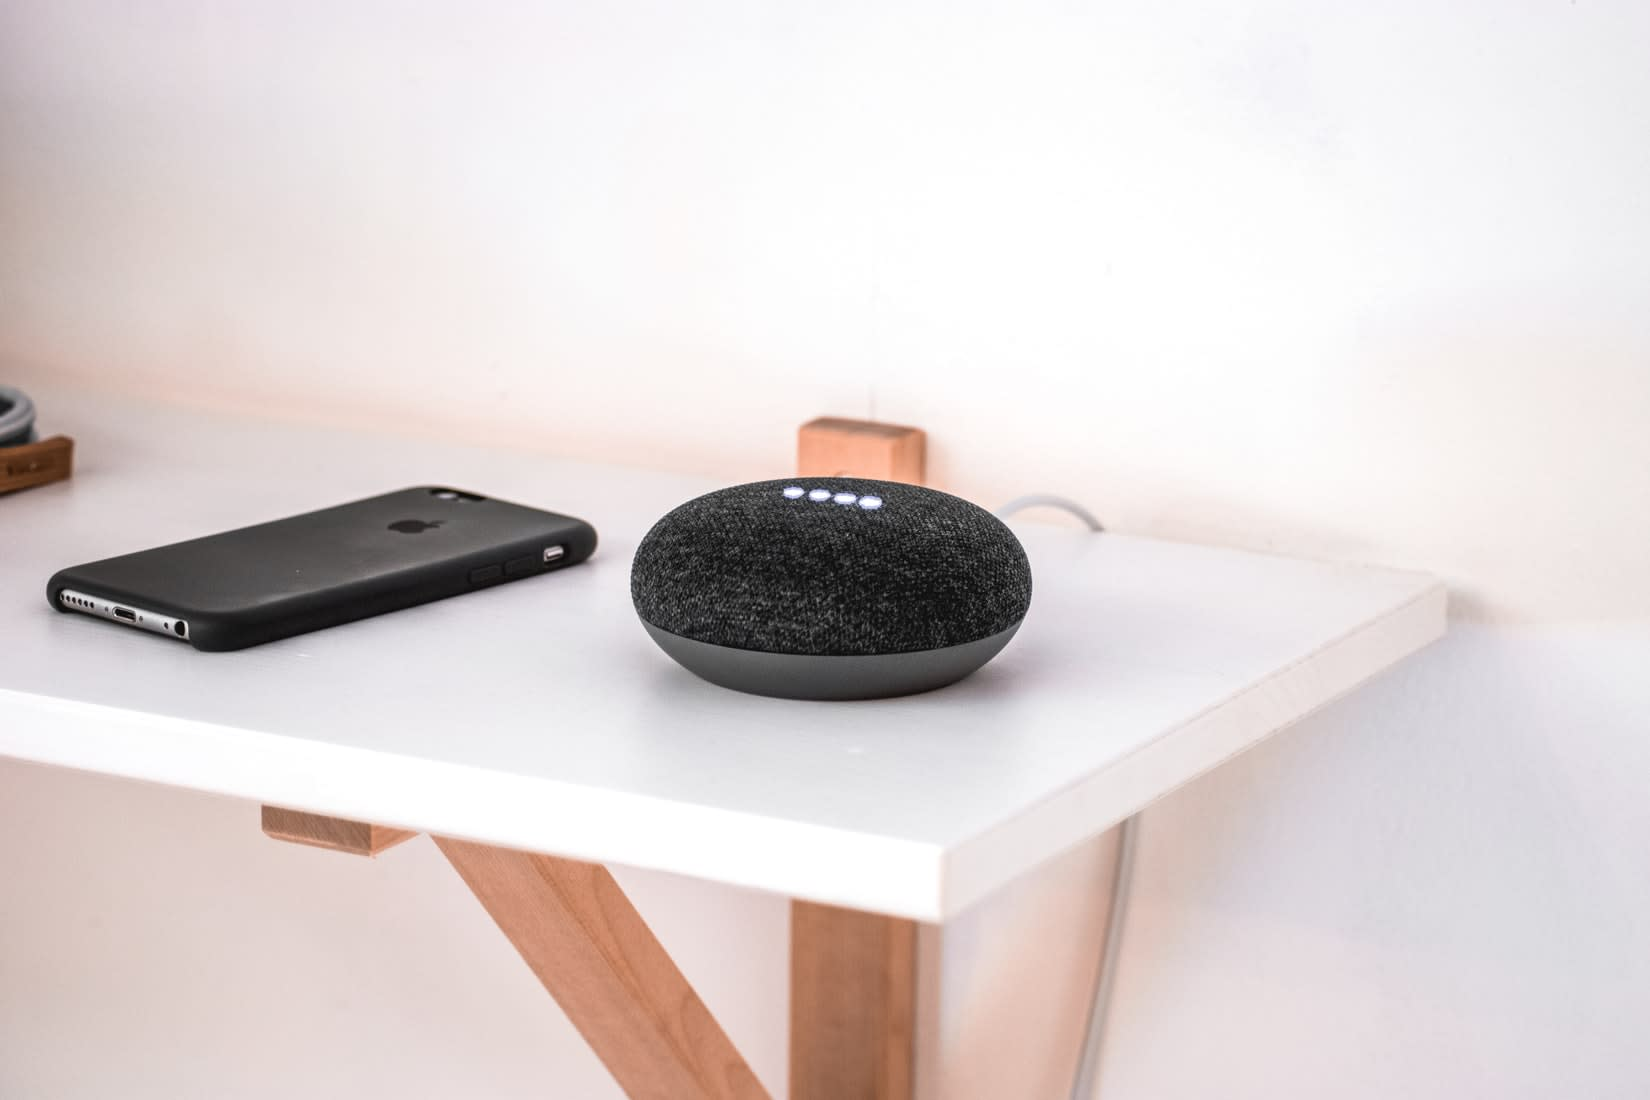 What is the difference between Wi-Fi speakers and Bluetooth speakers?